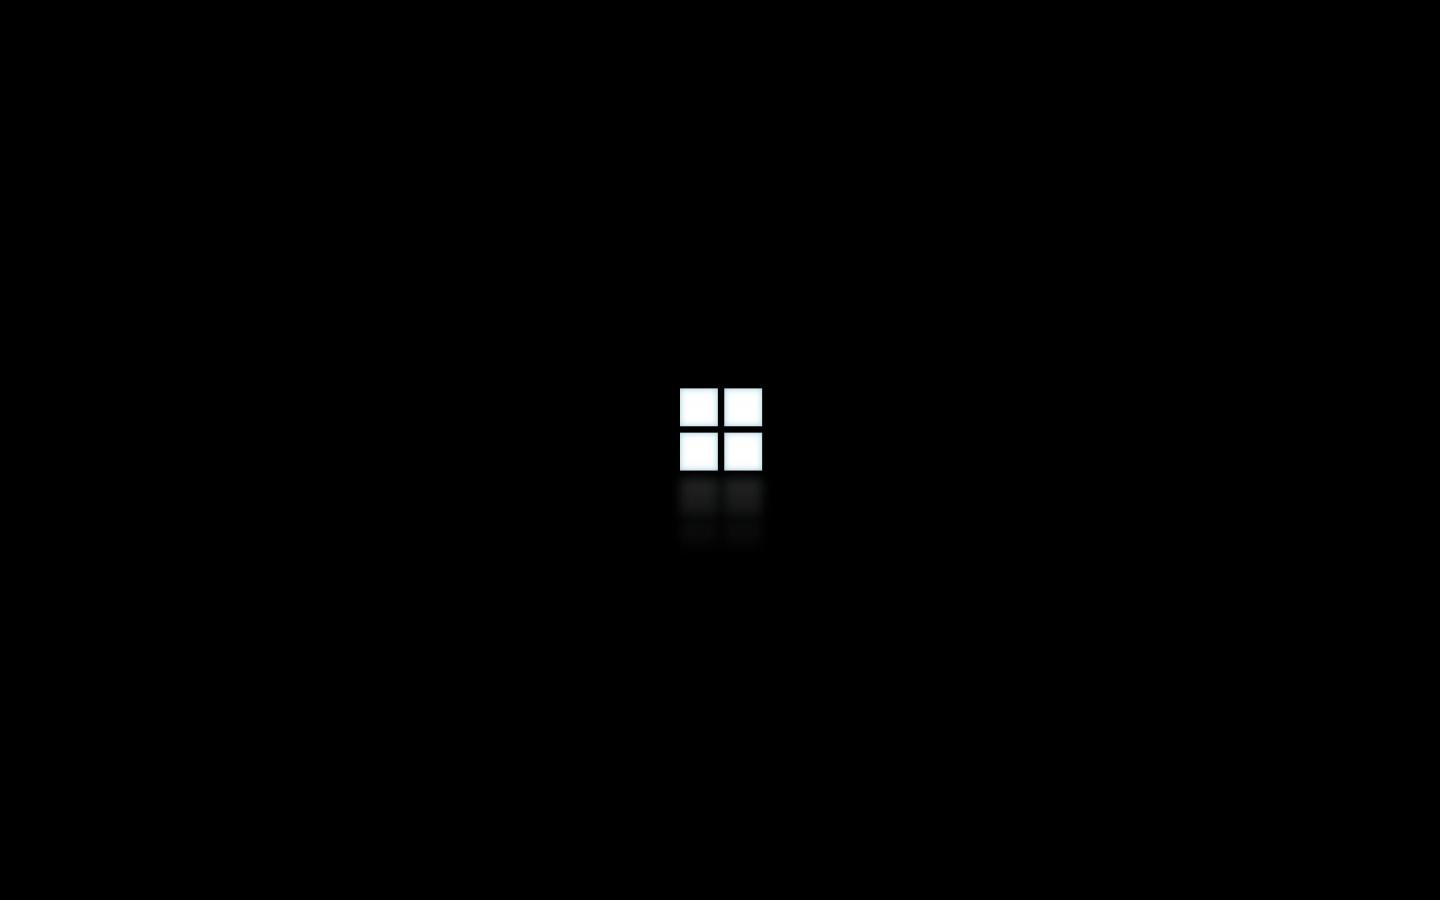 50+ Windows 10 Minimal Wallpaper on WallpaperSafari